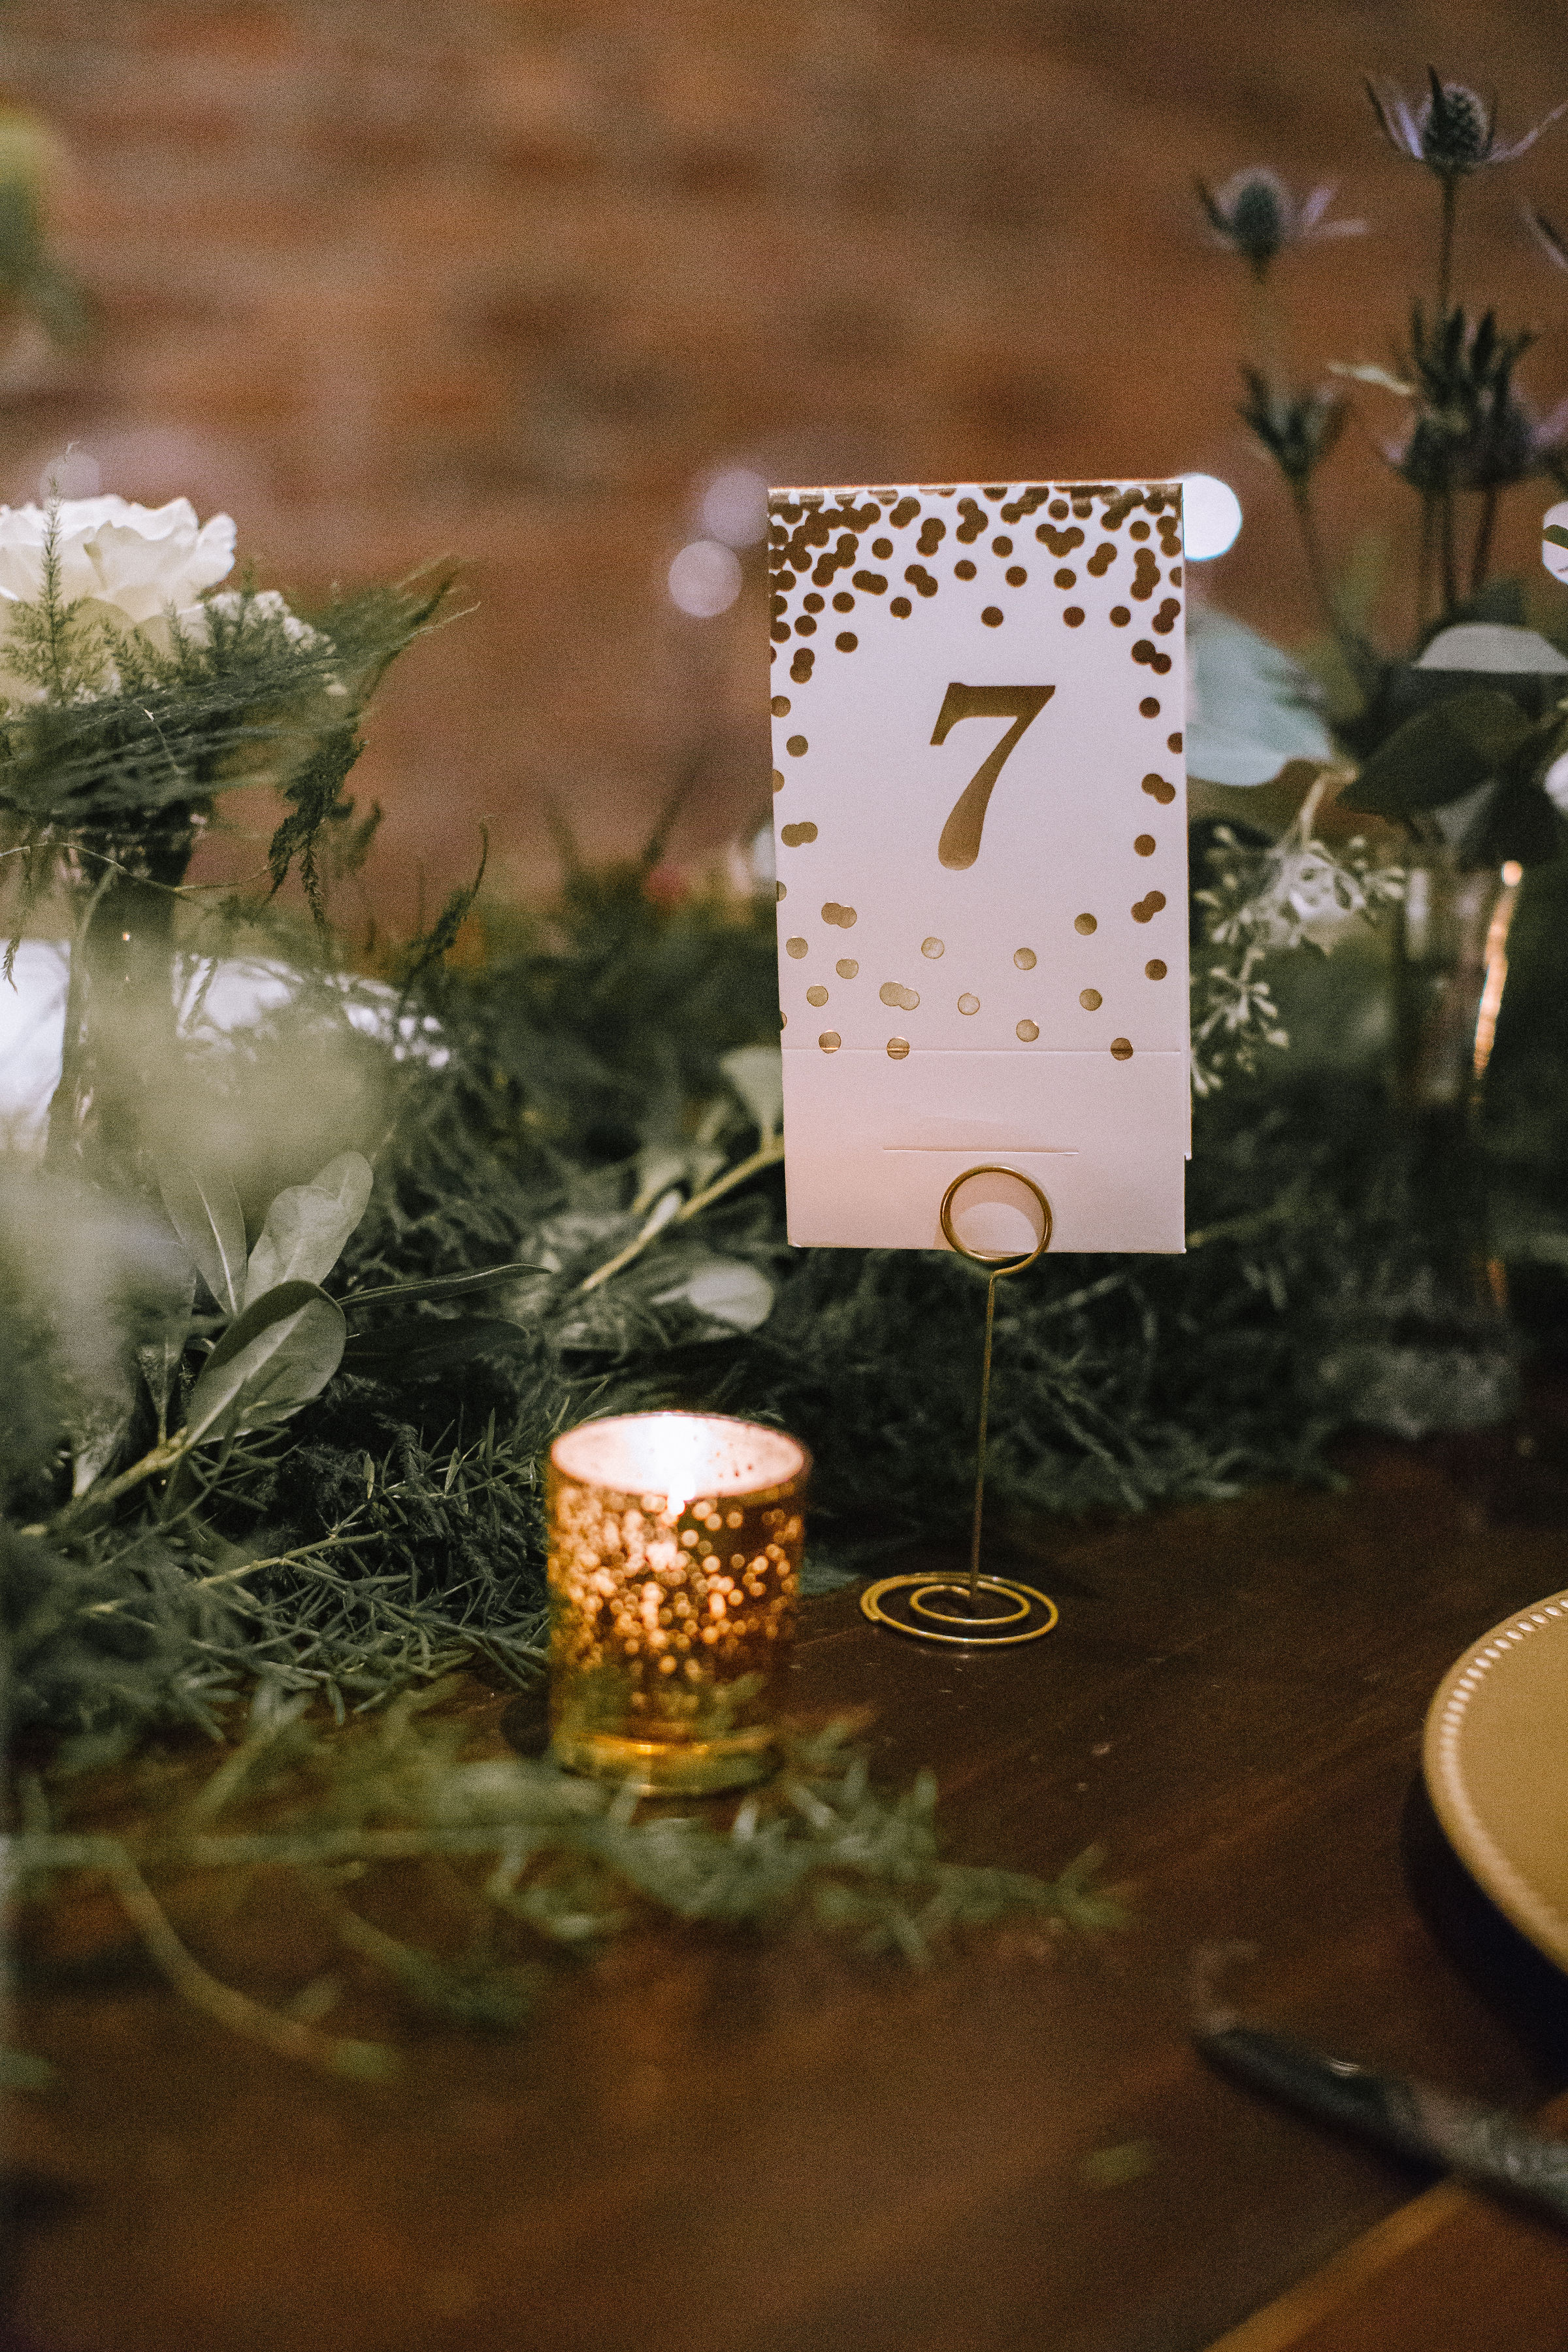 Gold wedding table numbers placed on wedding table with greenery and candles for Pittsburgh wedding at Studio Slate planned by Exhale Events. Find more wedding inspiration at exhale-events.com!